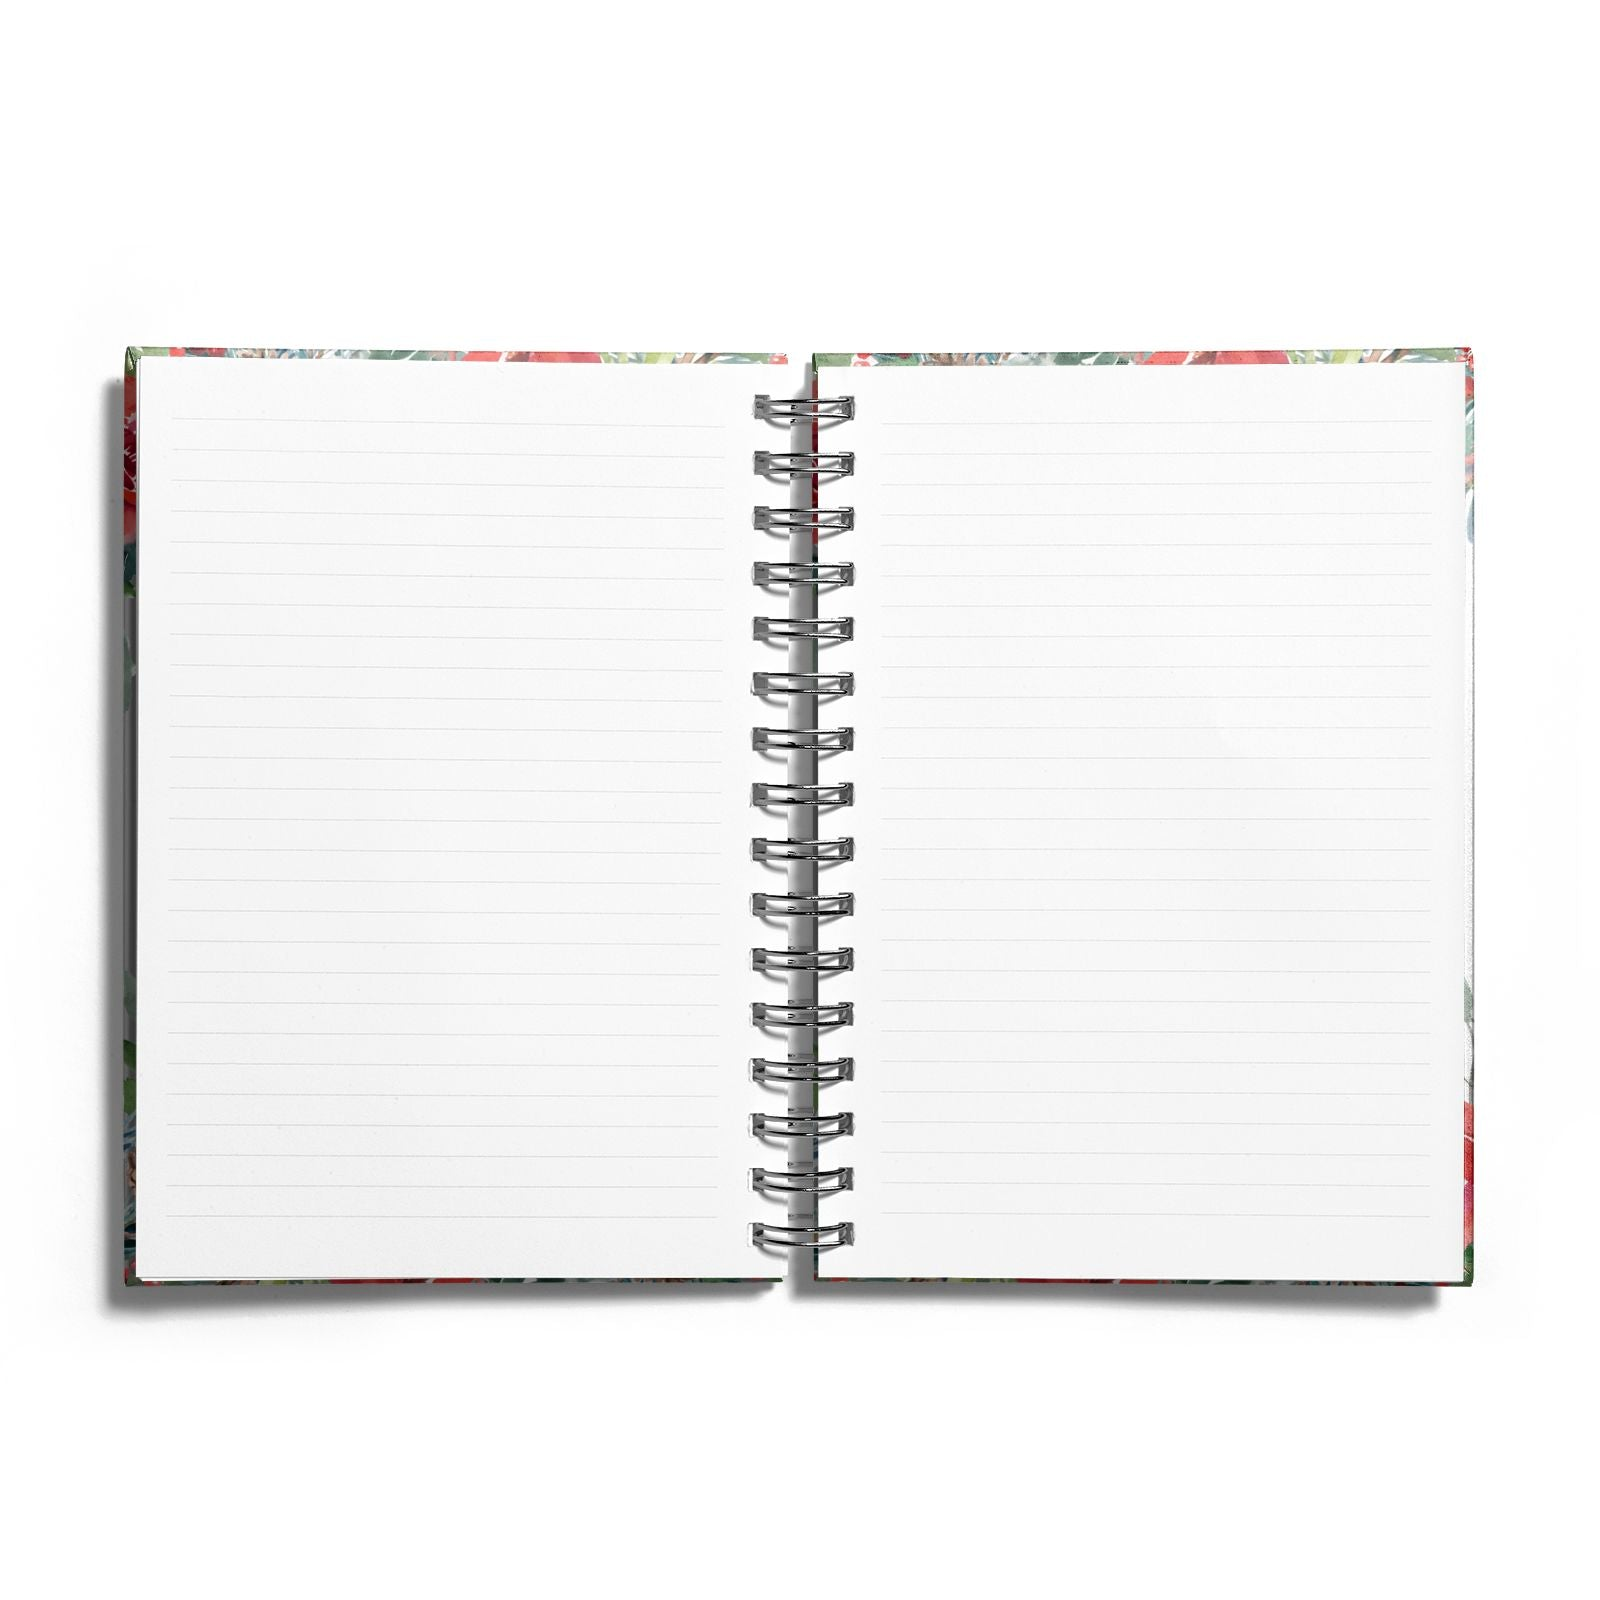 Personalised Floral Winter Arrangement Notebook with Silver Coil and Lined Paper